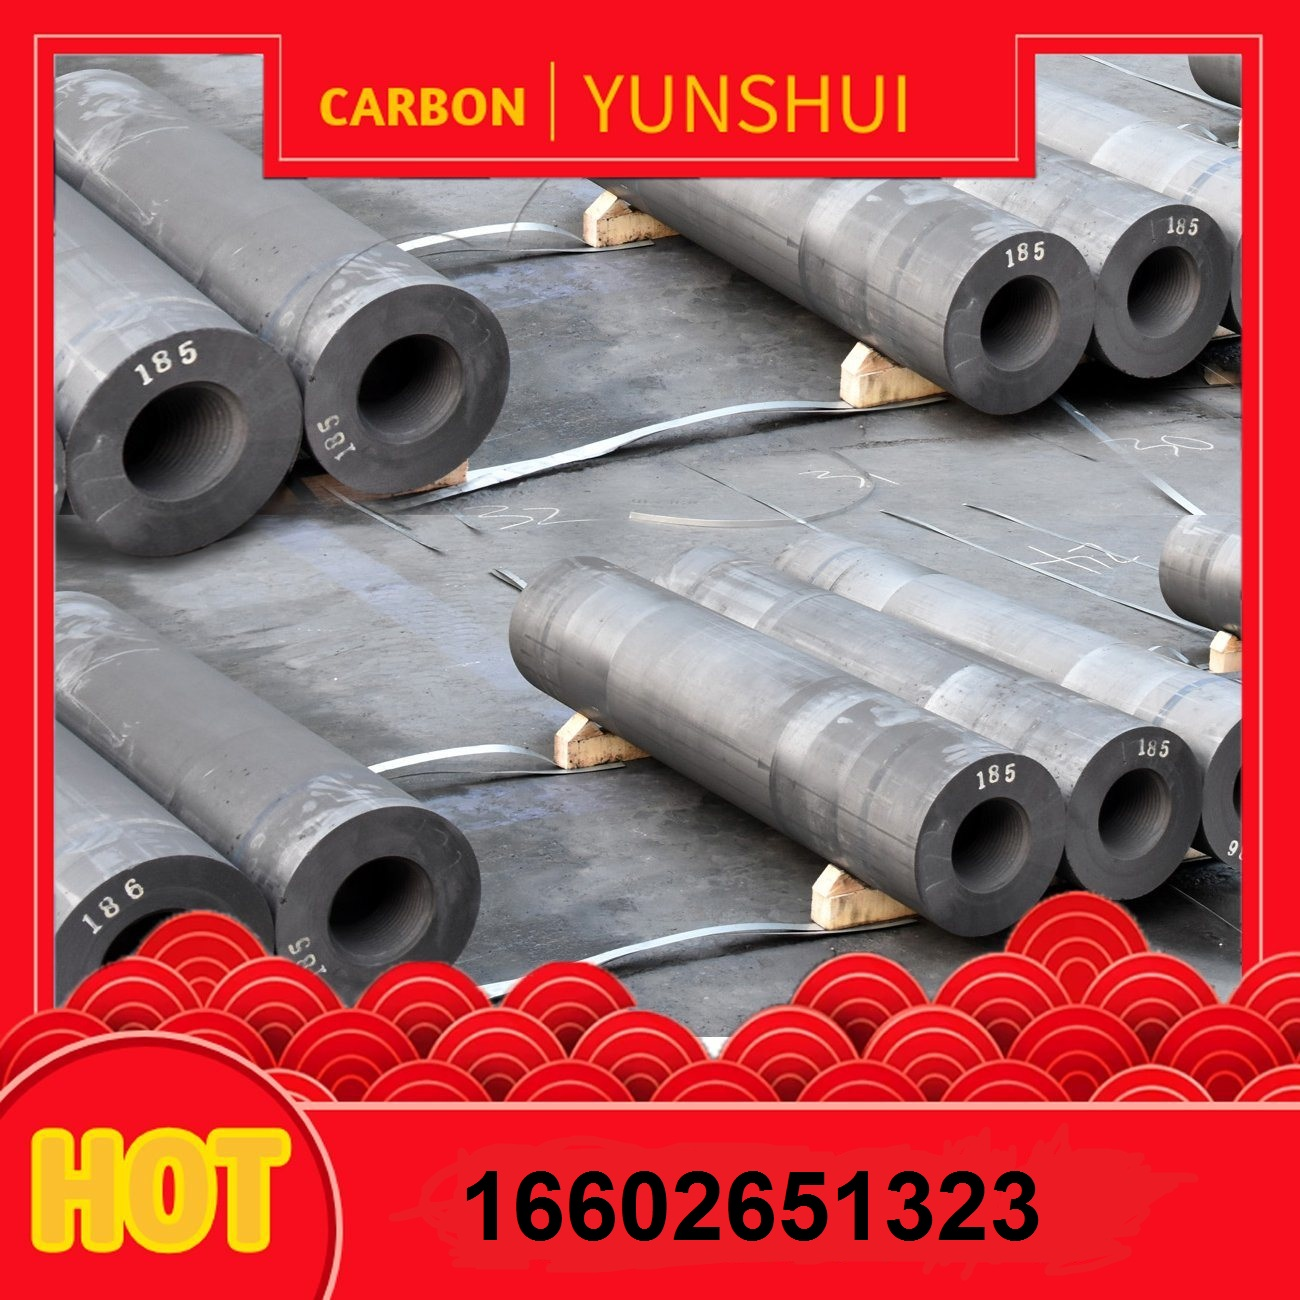 Supply, Graphite Hollow Material, Graphite Board, Graphite Electrode Best Export Supplier, Graphite